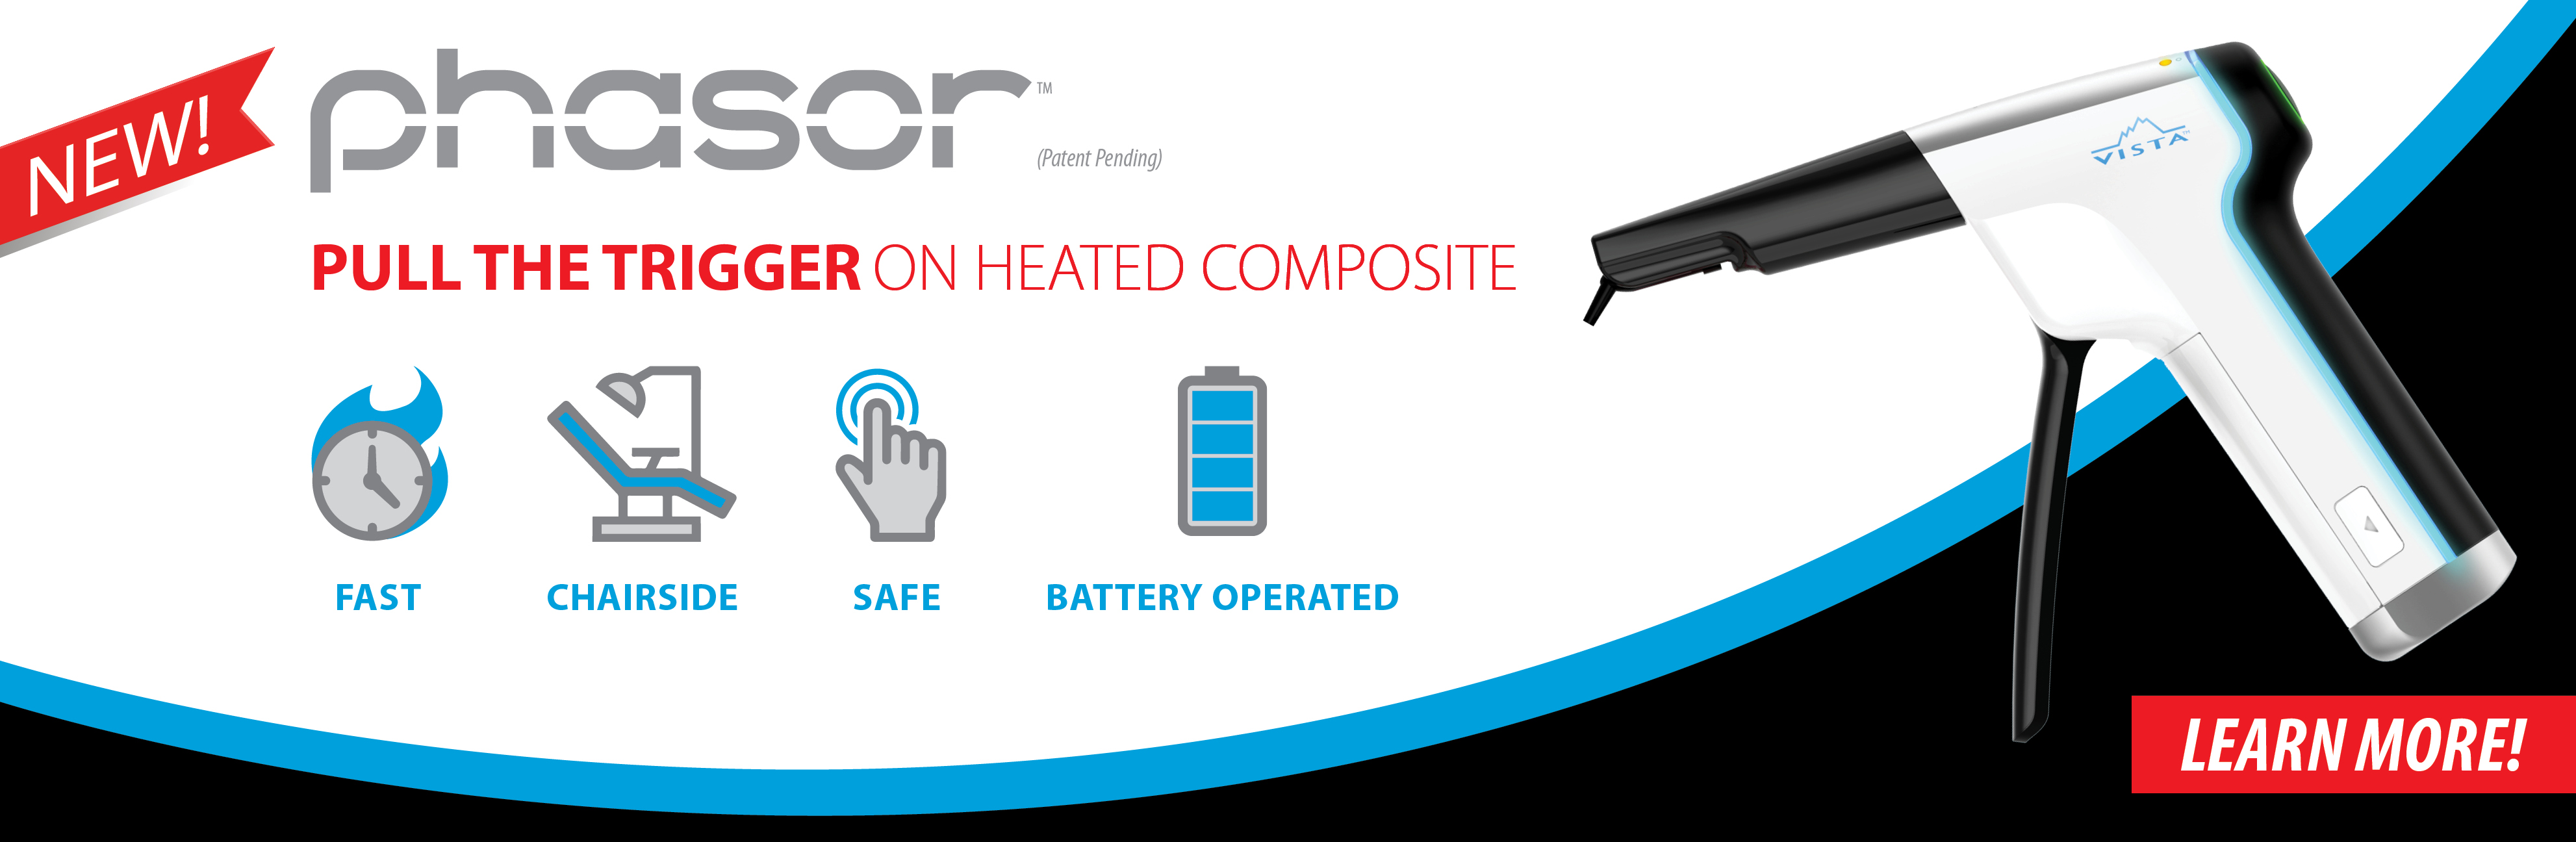 Phasor™ Composite Heating System